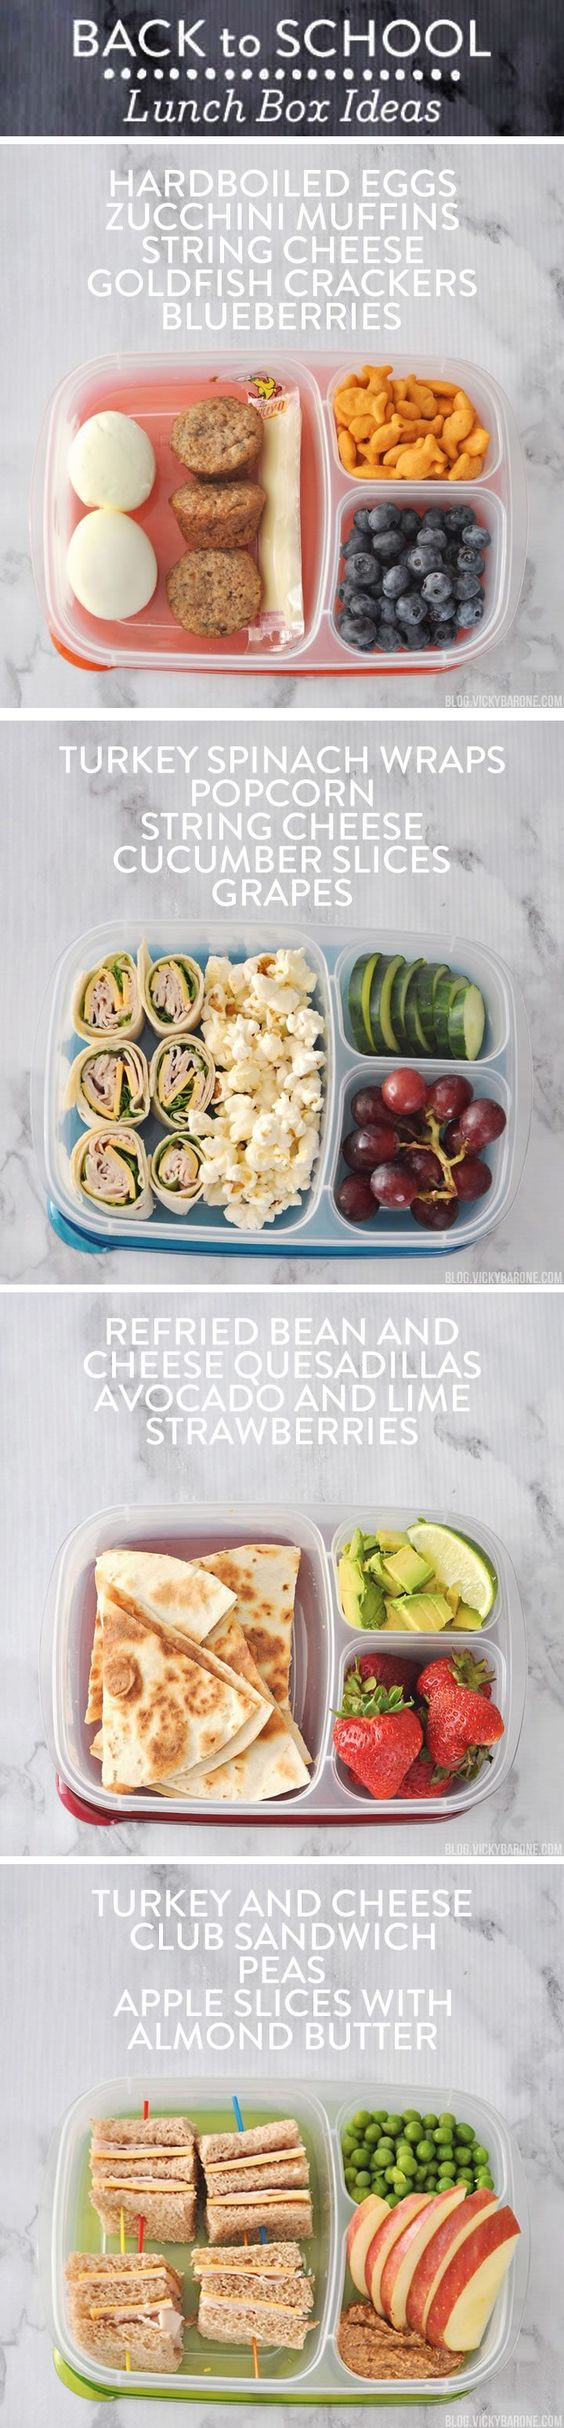 Yummy packed lunch ideas for when you're stumped on what to send your kiddo to school with. Packed in @easylunchboxes, these lunch combinations have fruits, veggies, and protein to give your little ones the nutrition and energy to tackle the day without sacrificing taste.